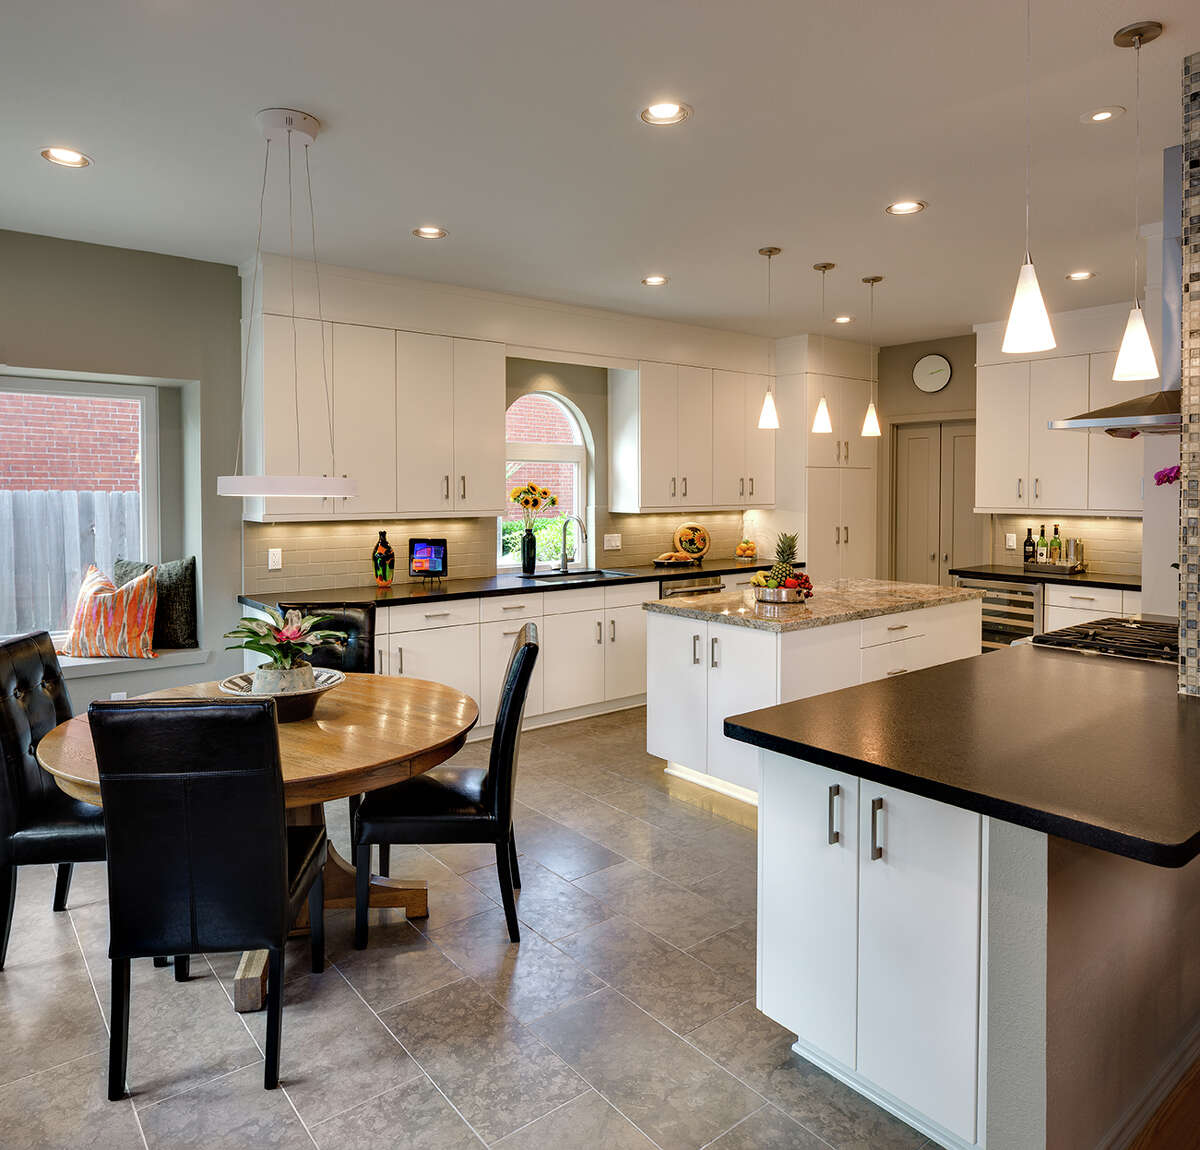 Interior designer Lynne T. Jones, with contractor Jim Nowlin, created this sleek contemporary look for Sugar Land residents Yvette and Bob Menefee. Their earlier kitchen, Yvette said, was a time capsule from the 1990s.